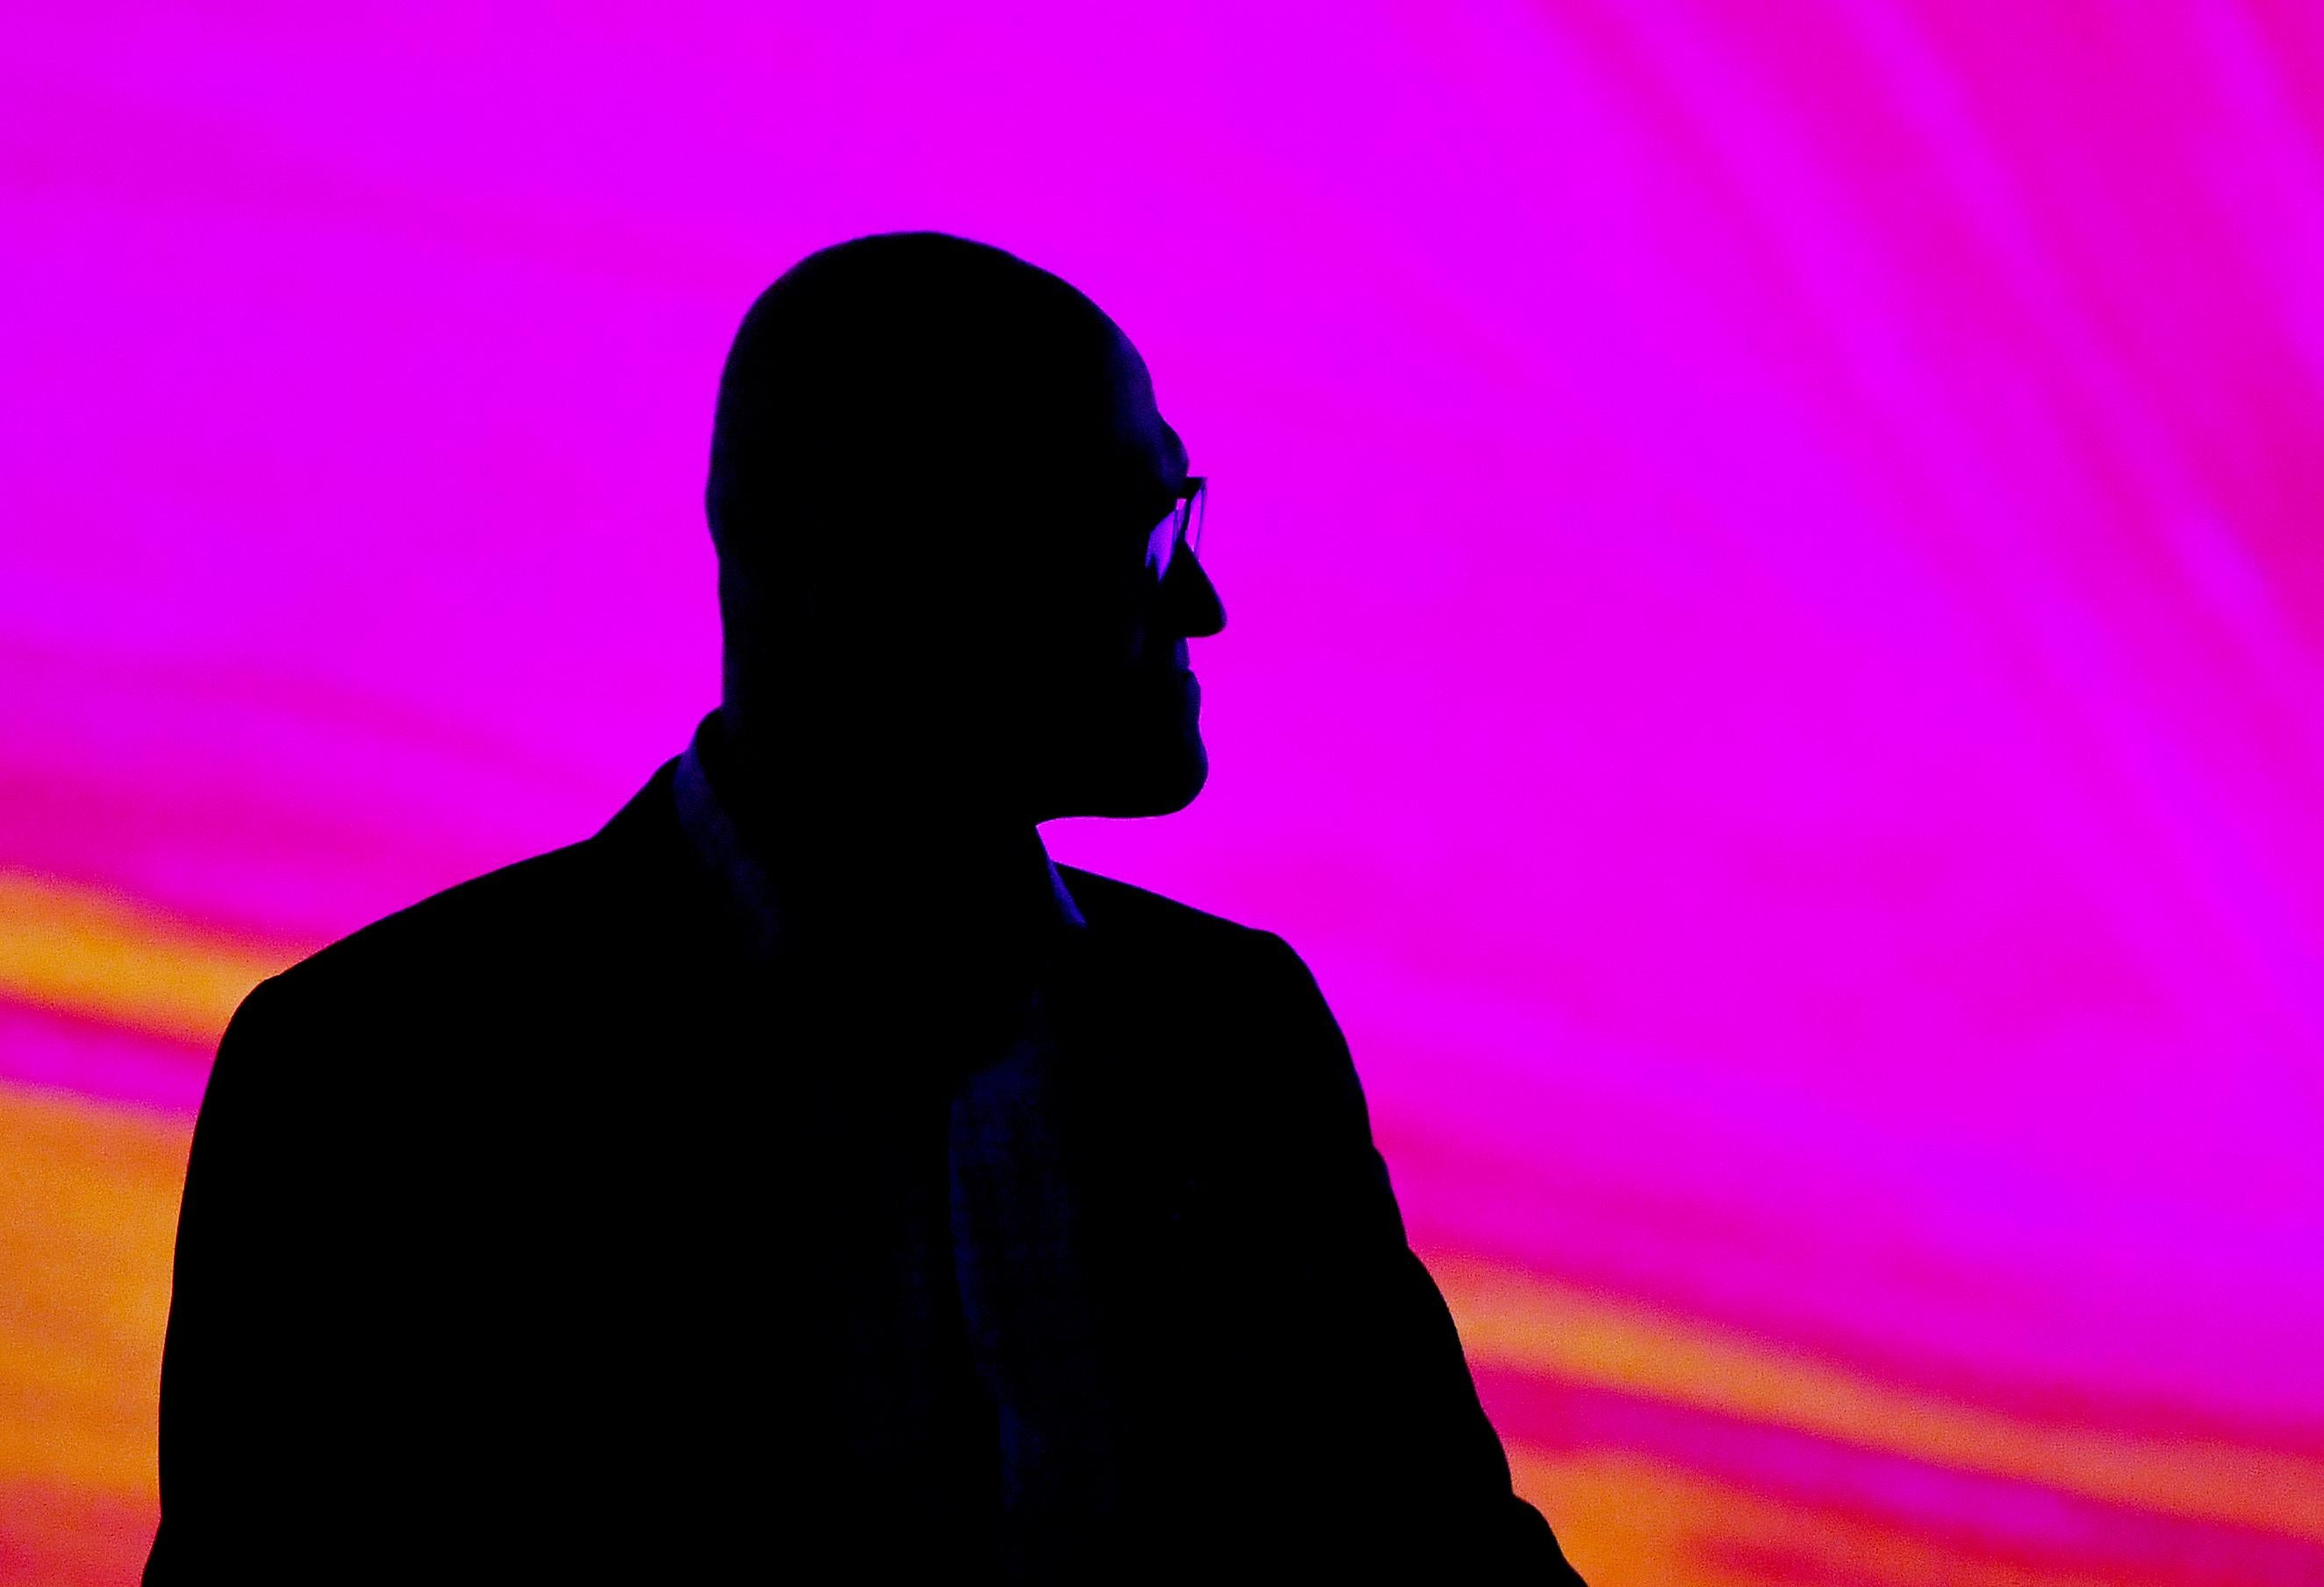 Satya Nadella seen in silhouette against a purple-red backdrop.